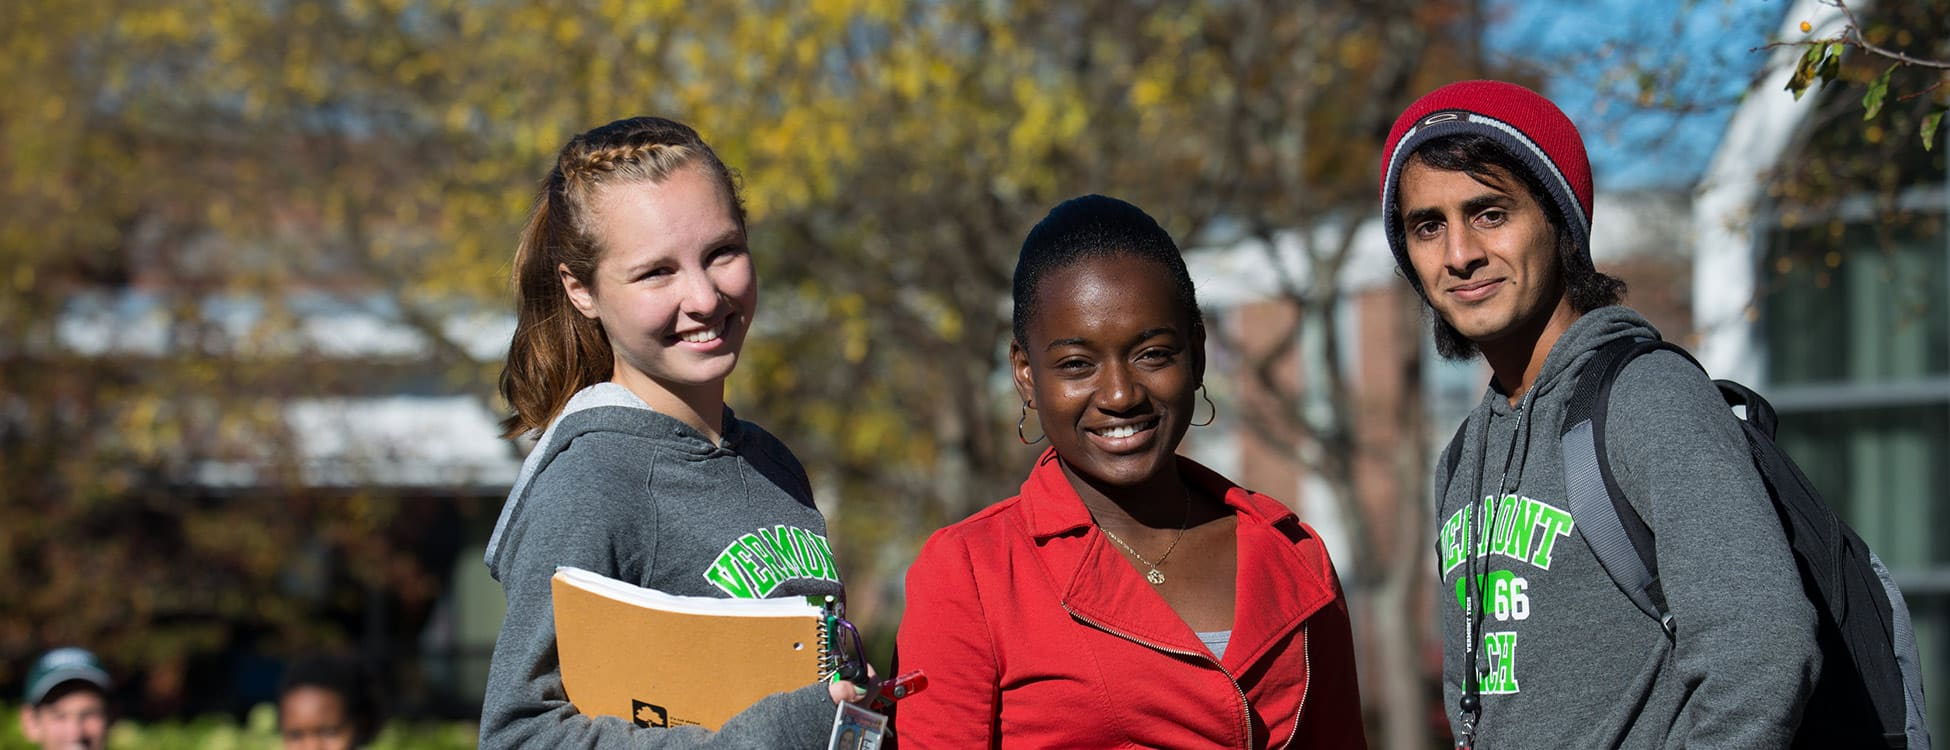 Three students posing for a picture on the plaza outside on the Randolph Center campus, diversity